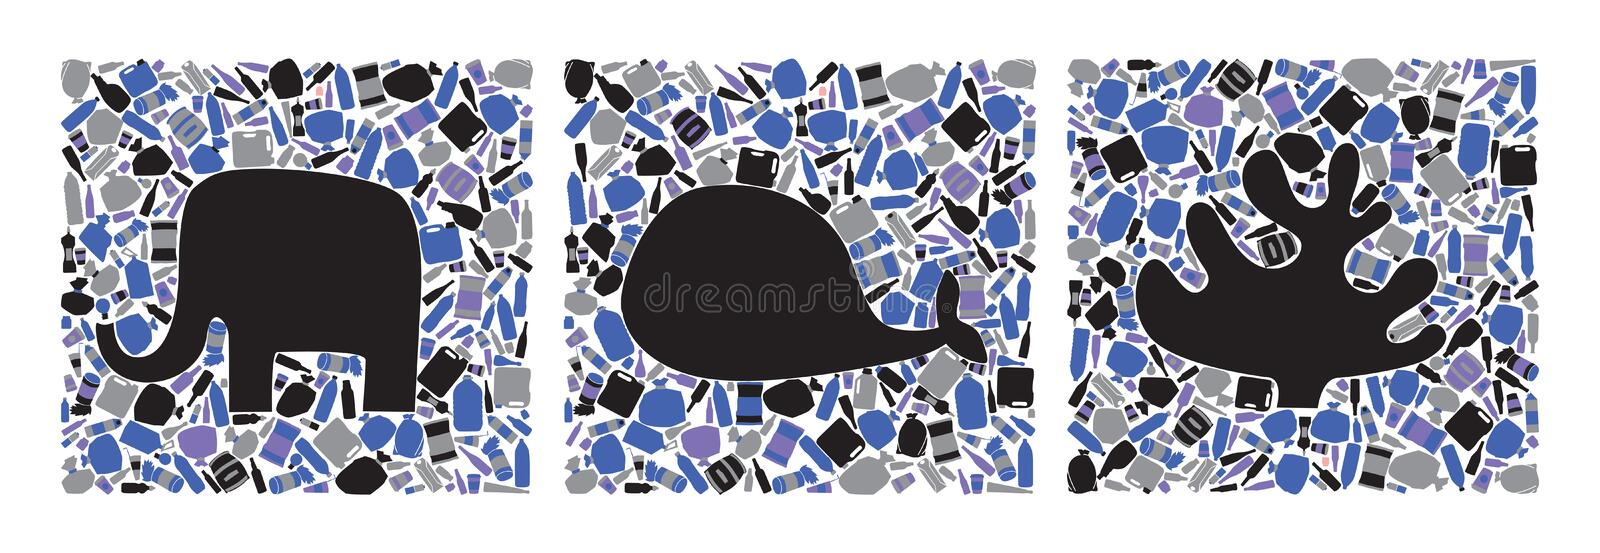 Black silhouettes of whale, elephant and coral surrounded by debris royalty free illustration